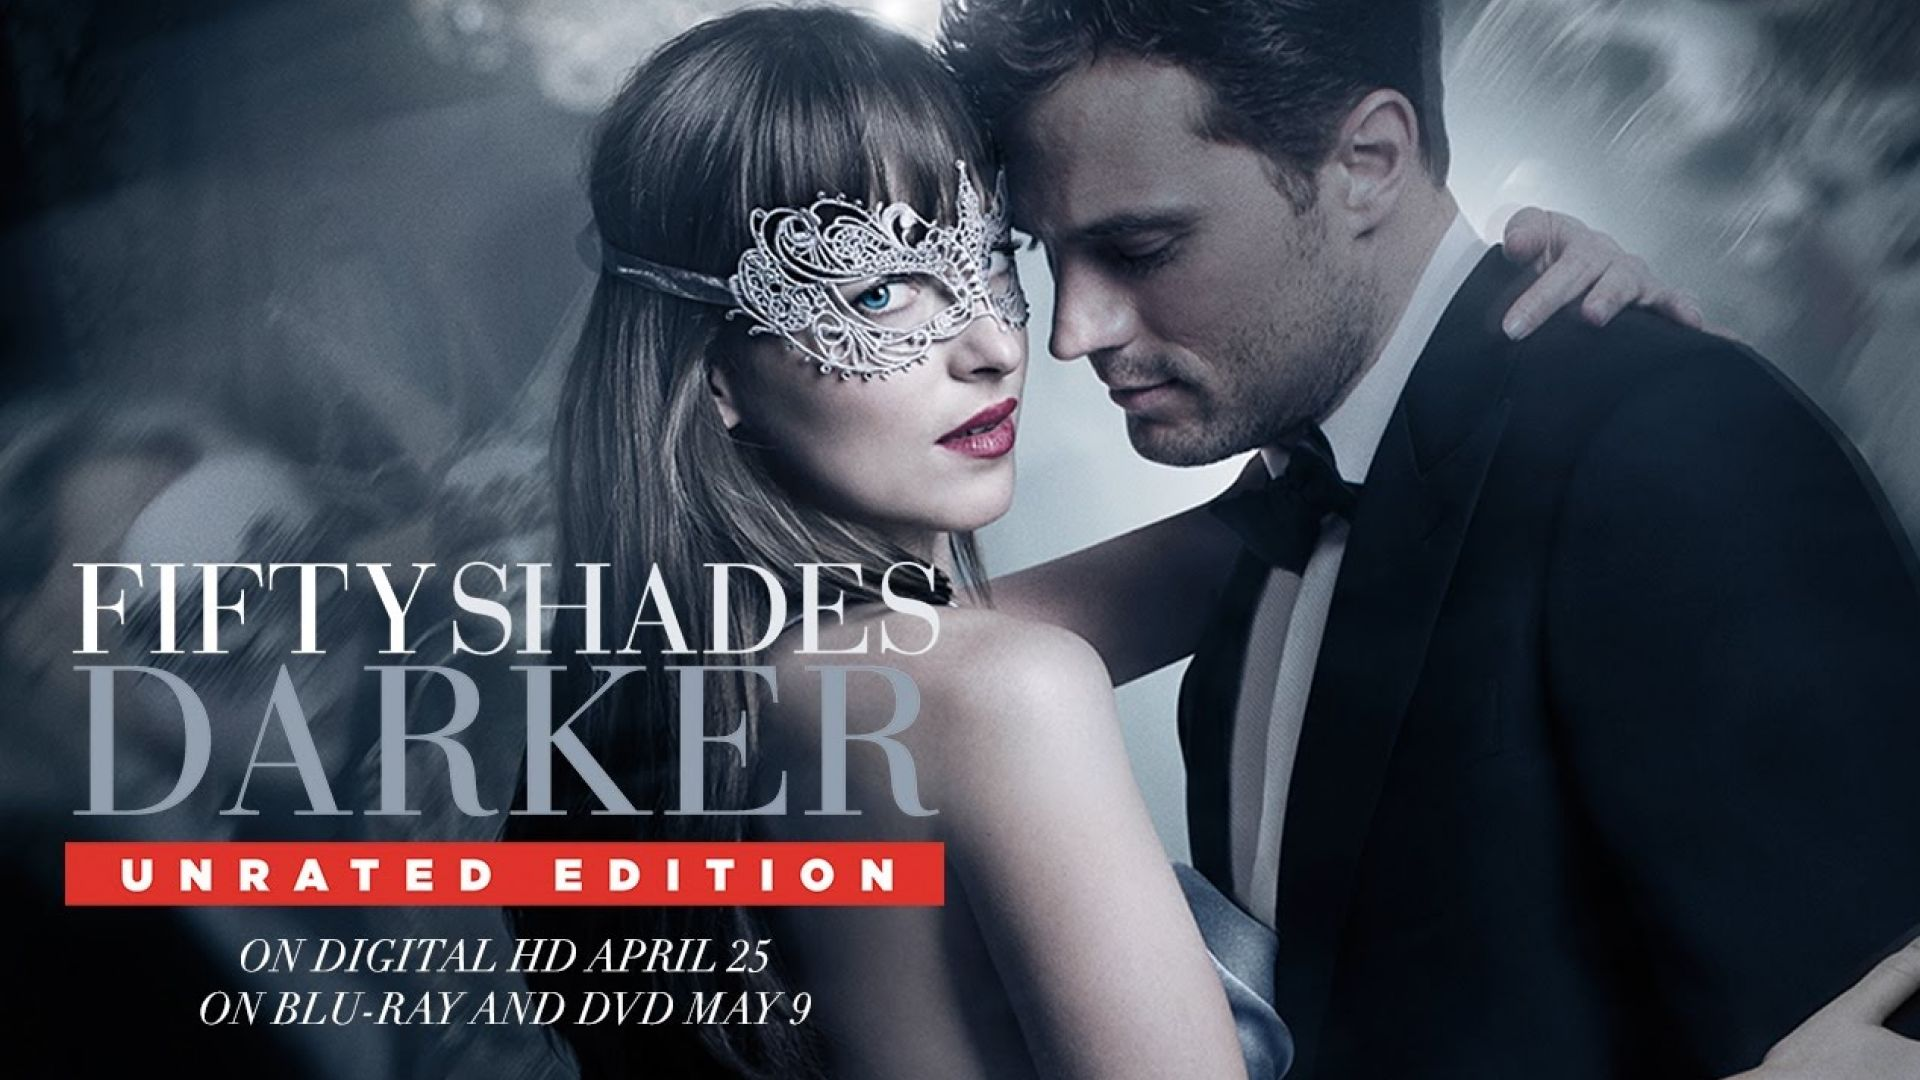 Fifty Shades Darker Unrated Edition Coming Soon, See the Tra